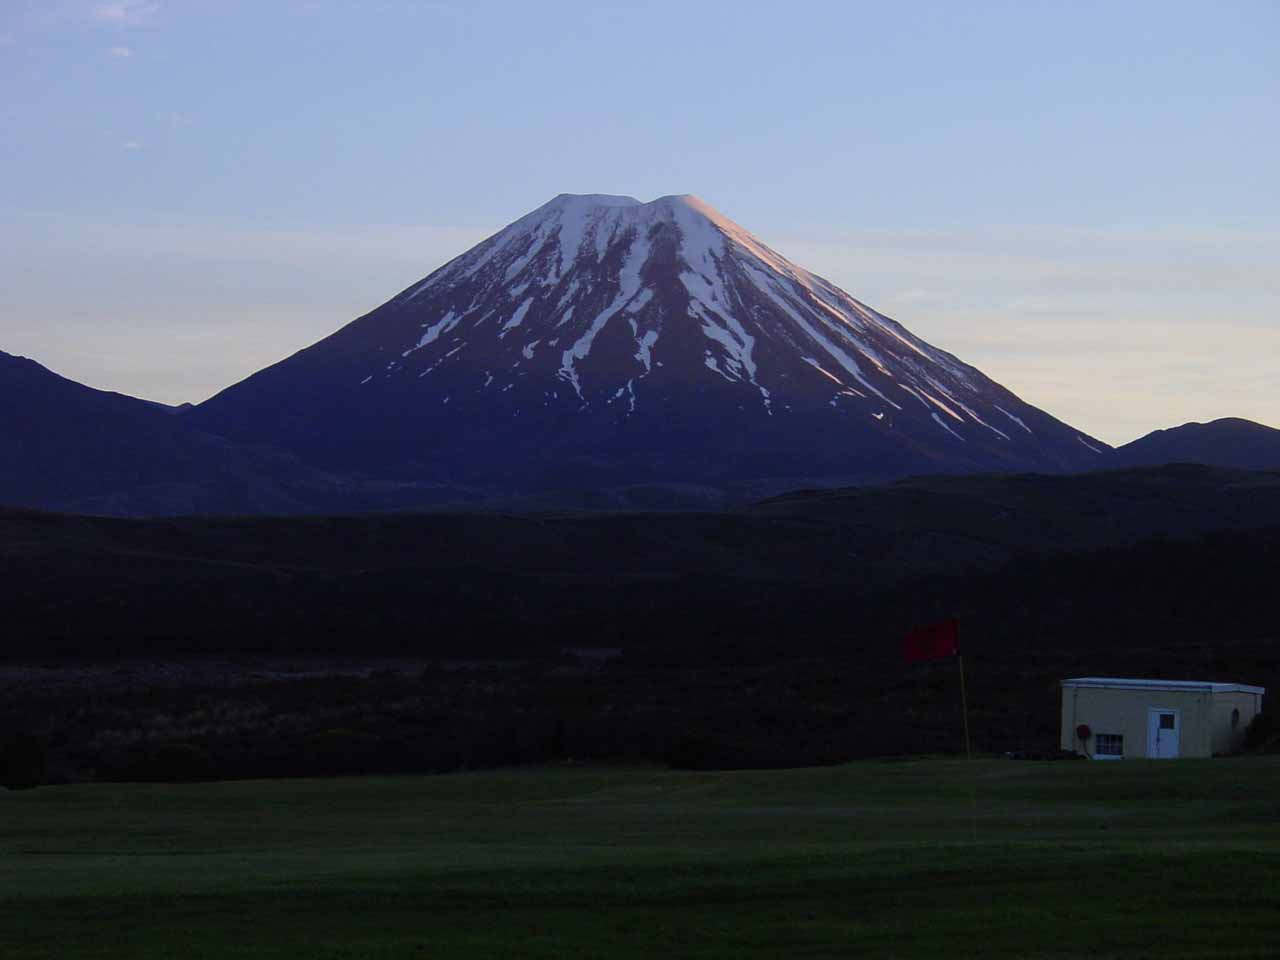 Mt Ngauruhoe as seen from the Chateau Tongariro